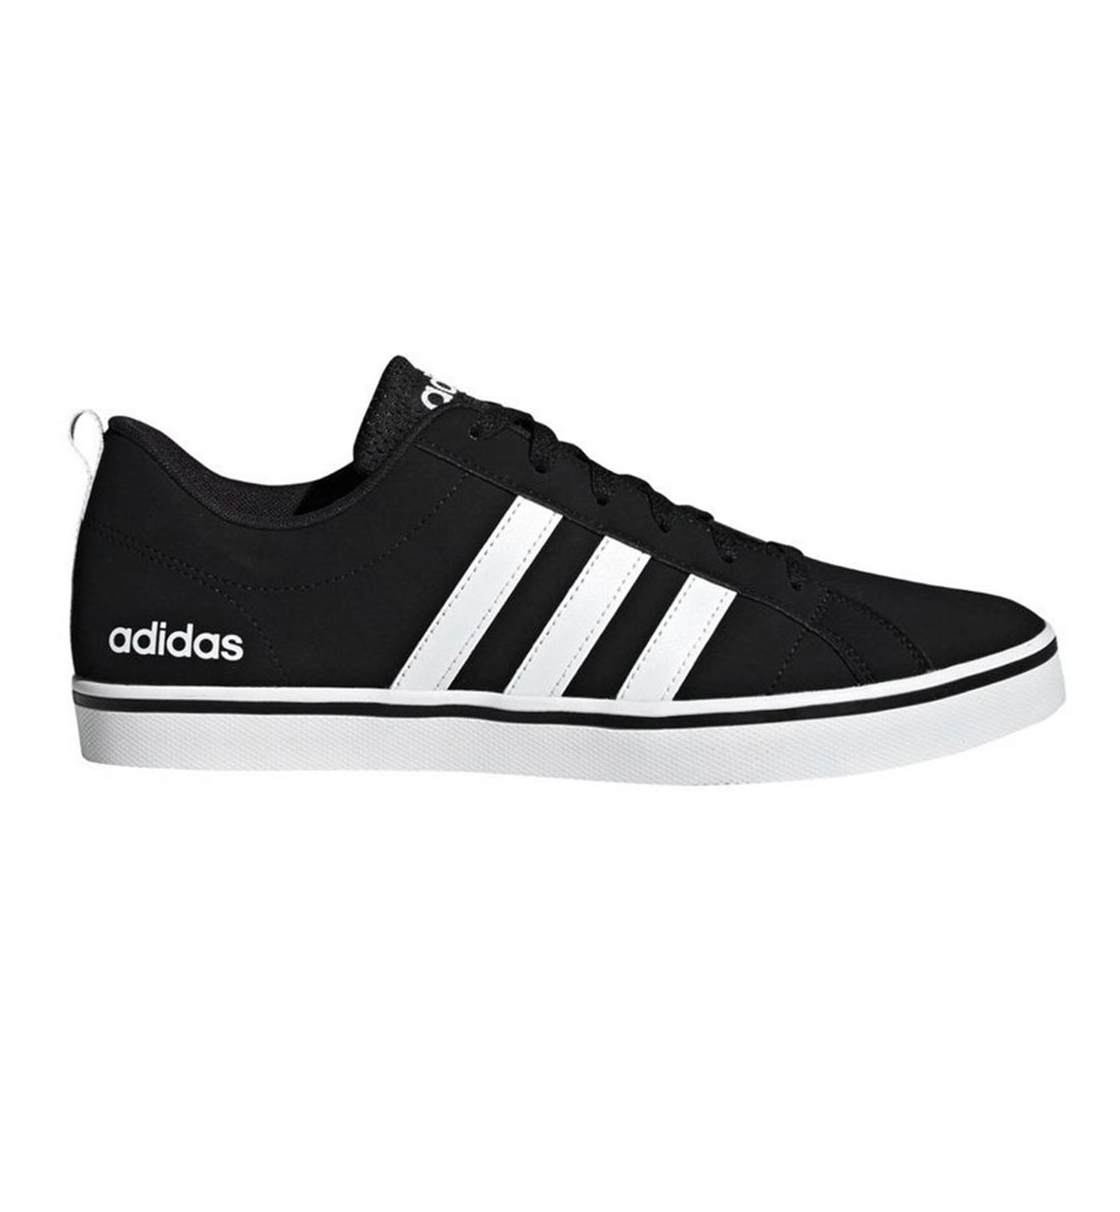 adidas Ανδρικό Παπούτσι Μόδας Ss20 Vs Pace EH0021